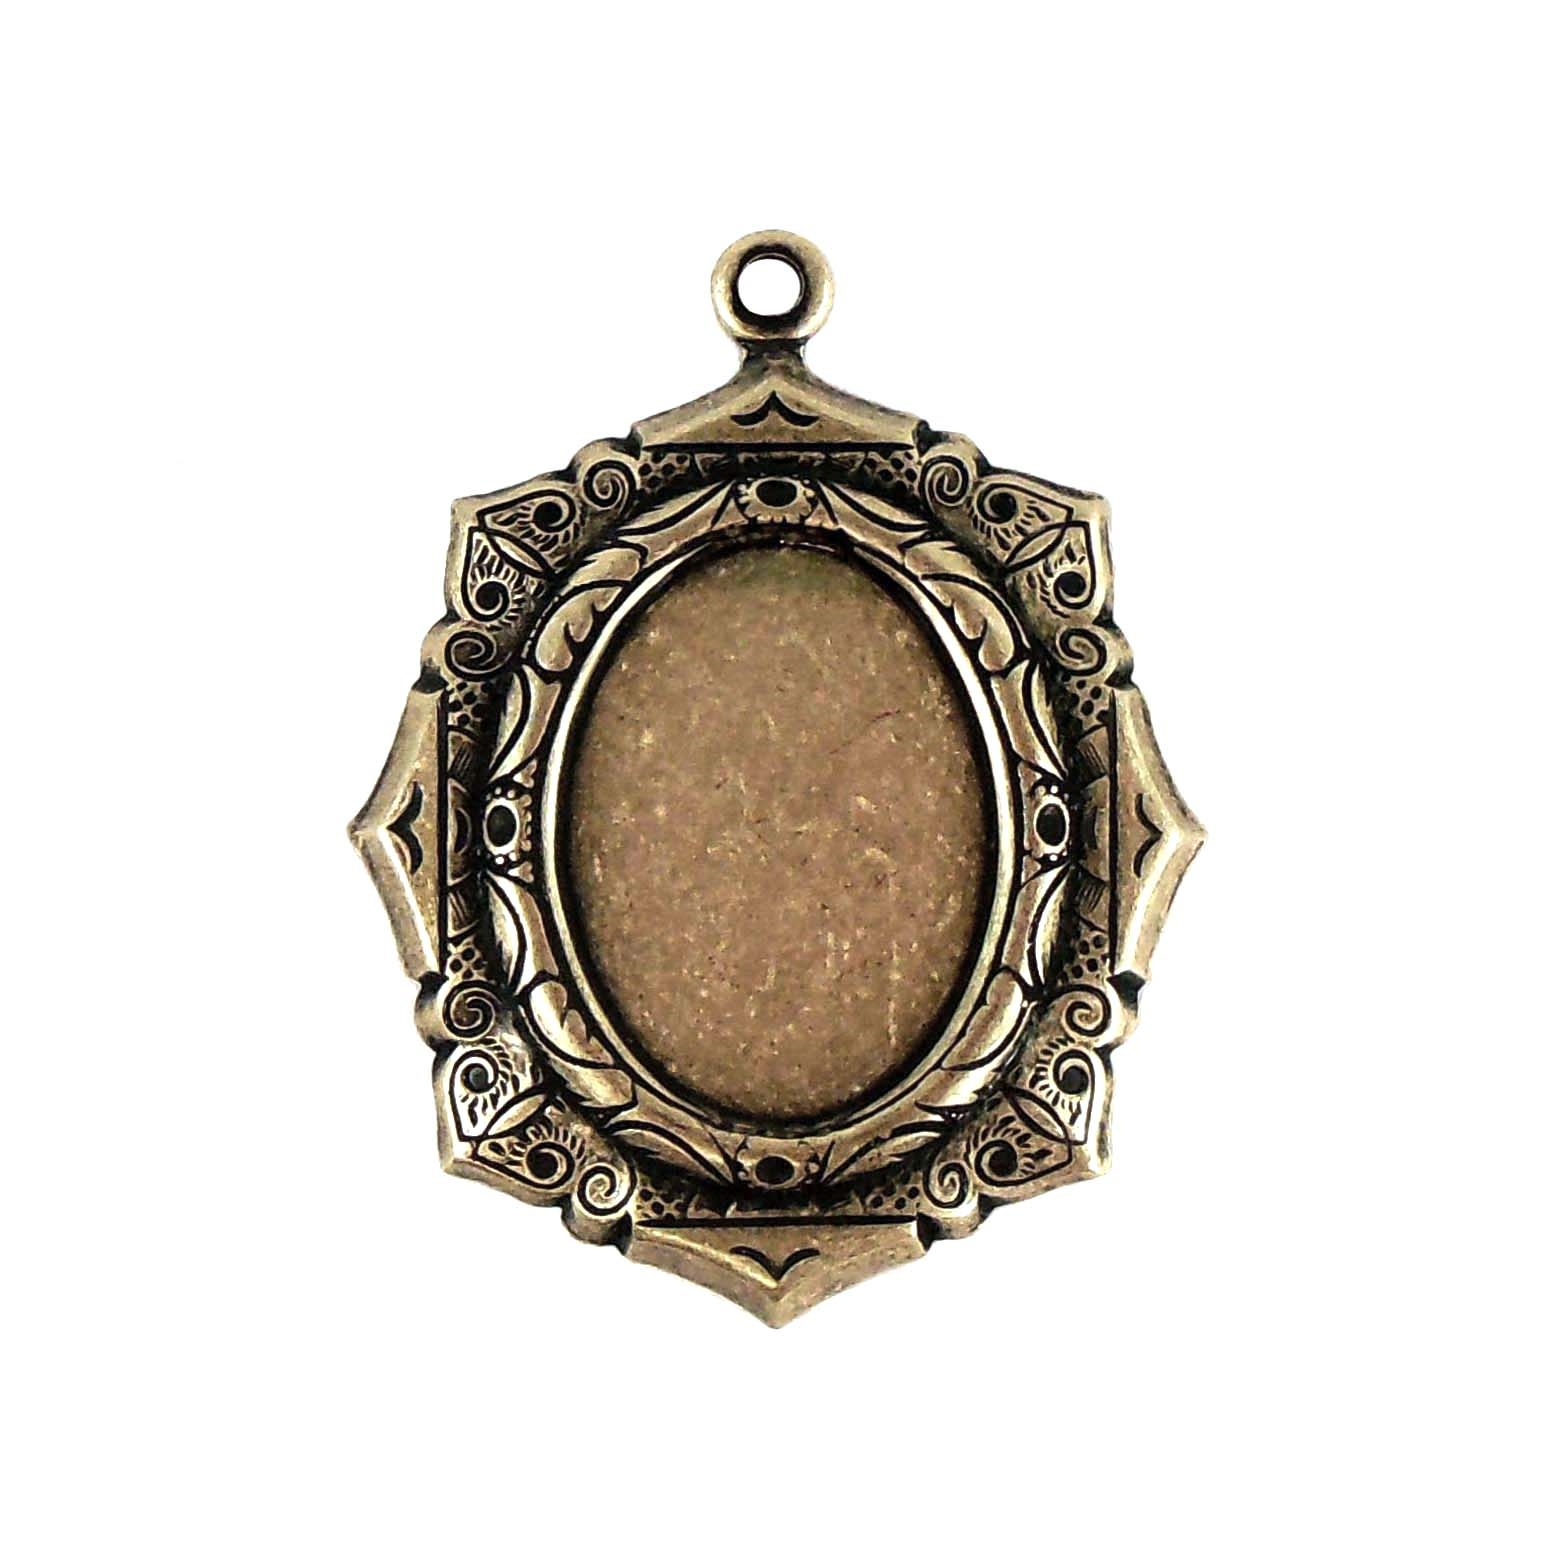 brass mount, brass pendant, cameo mount, 0190, B'sue Boutiques, nickel free jewelry supplies, vintage jewellery supplies, jewelry making supplies, brass ox, antique brass, stone mount, jewelry findings, 18 x 13mm